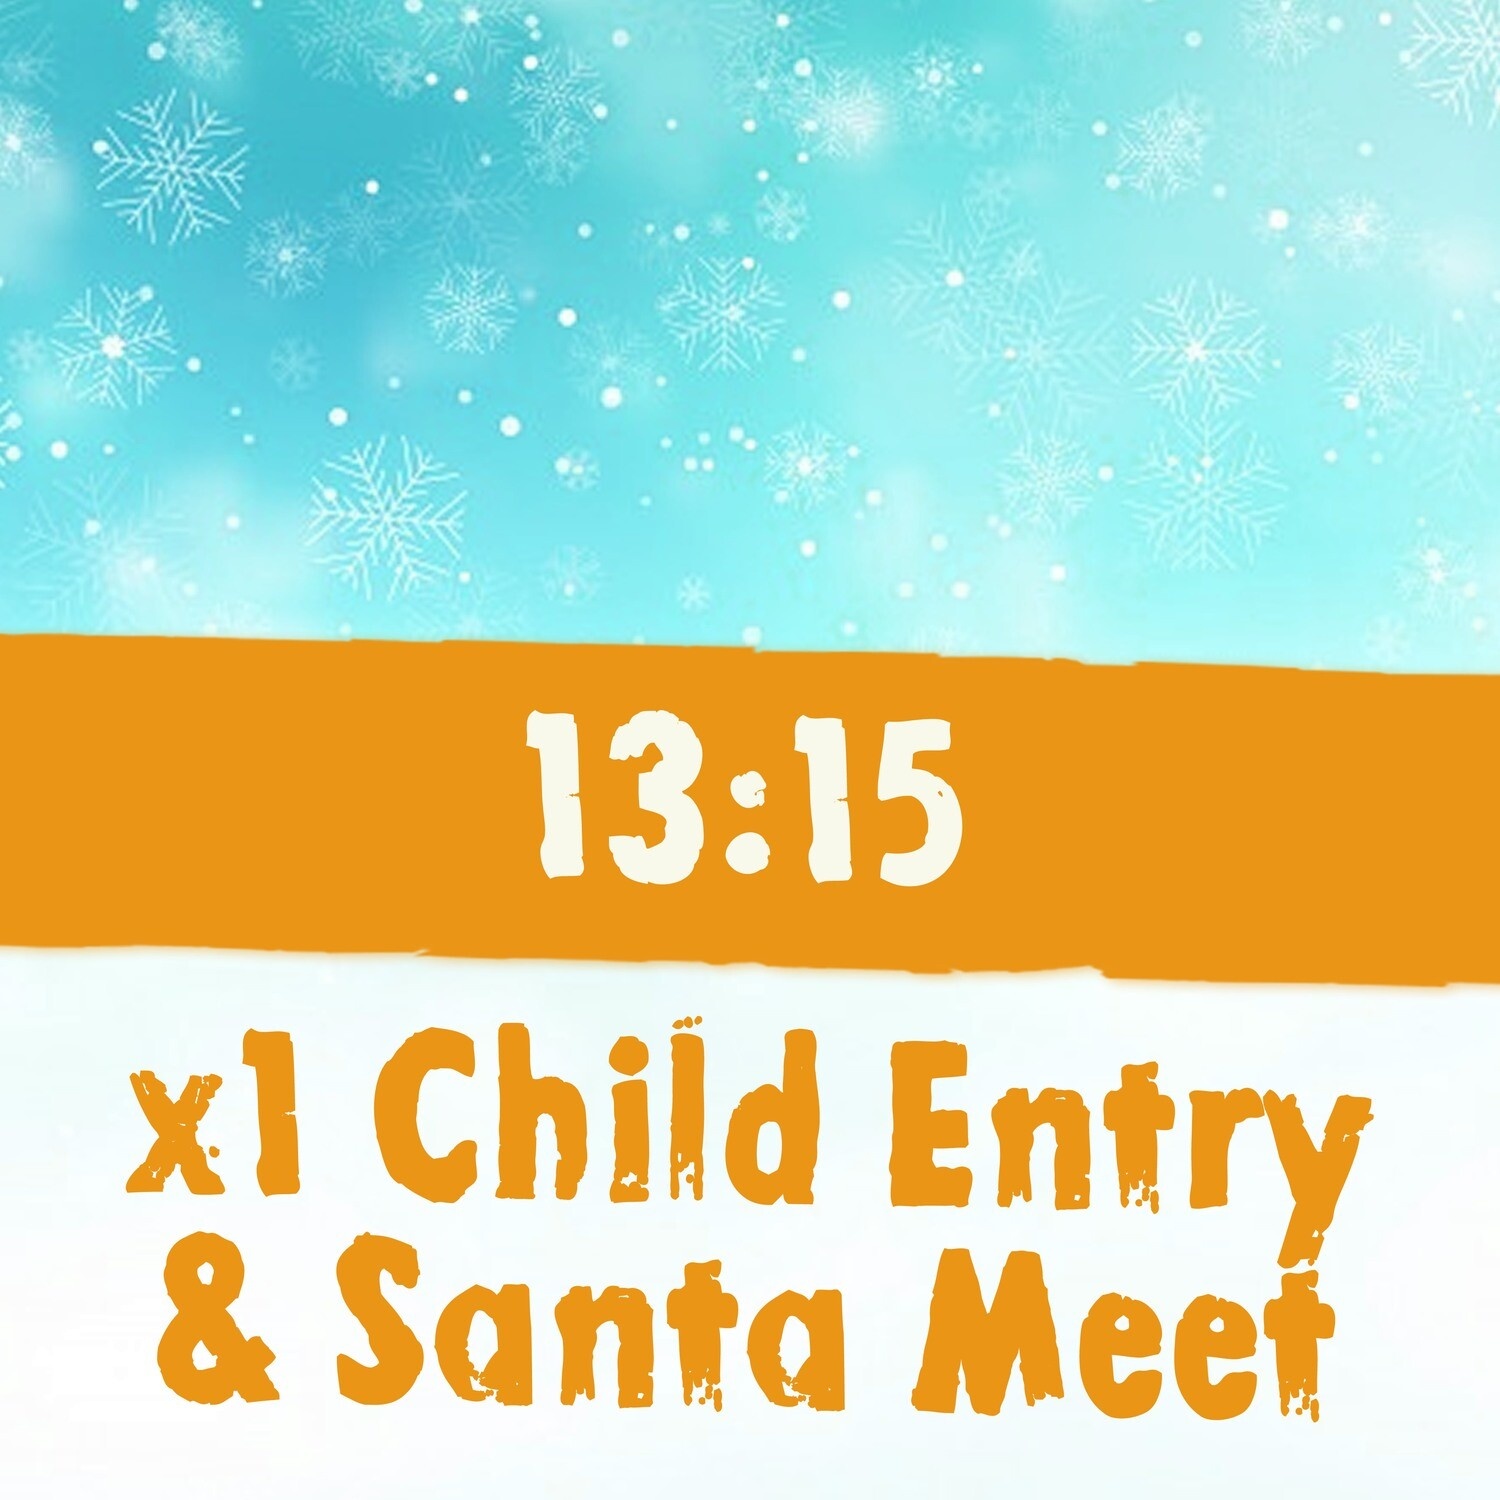 x1 Child Admission + Santa Meet 23rd Dec / 13:15